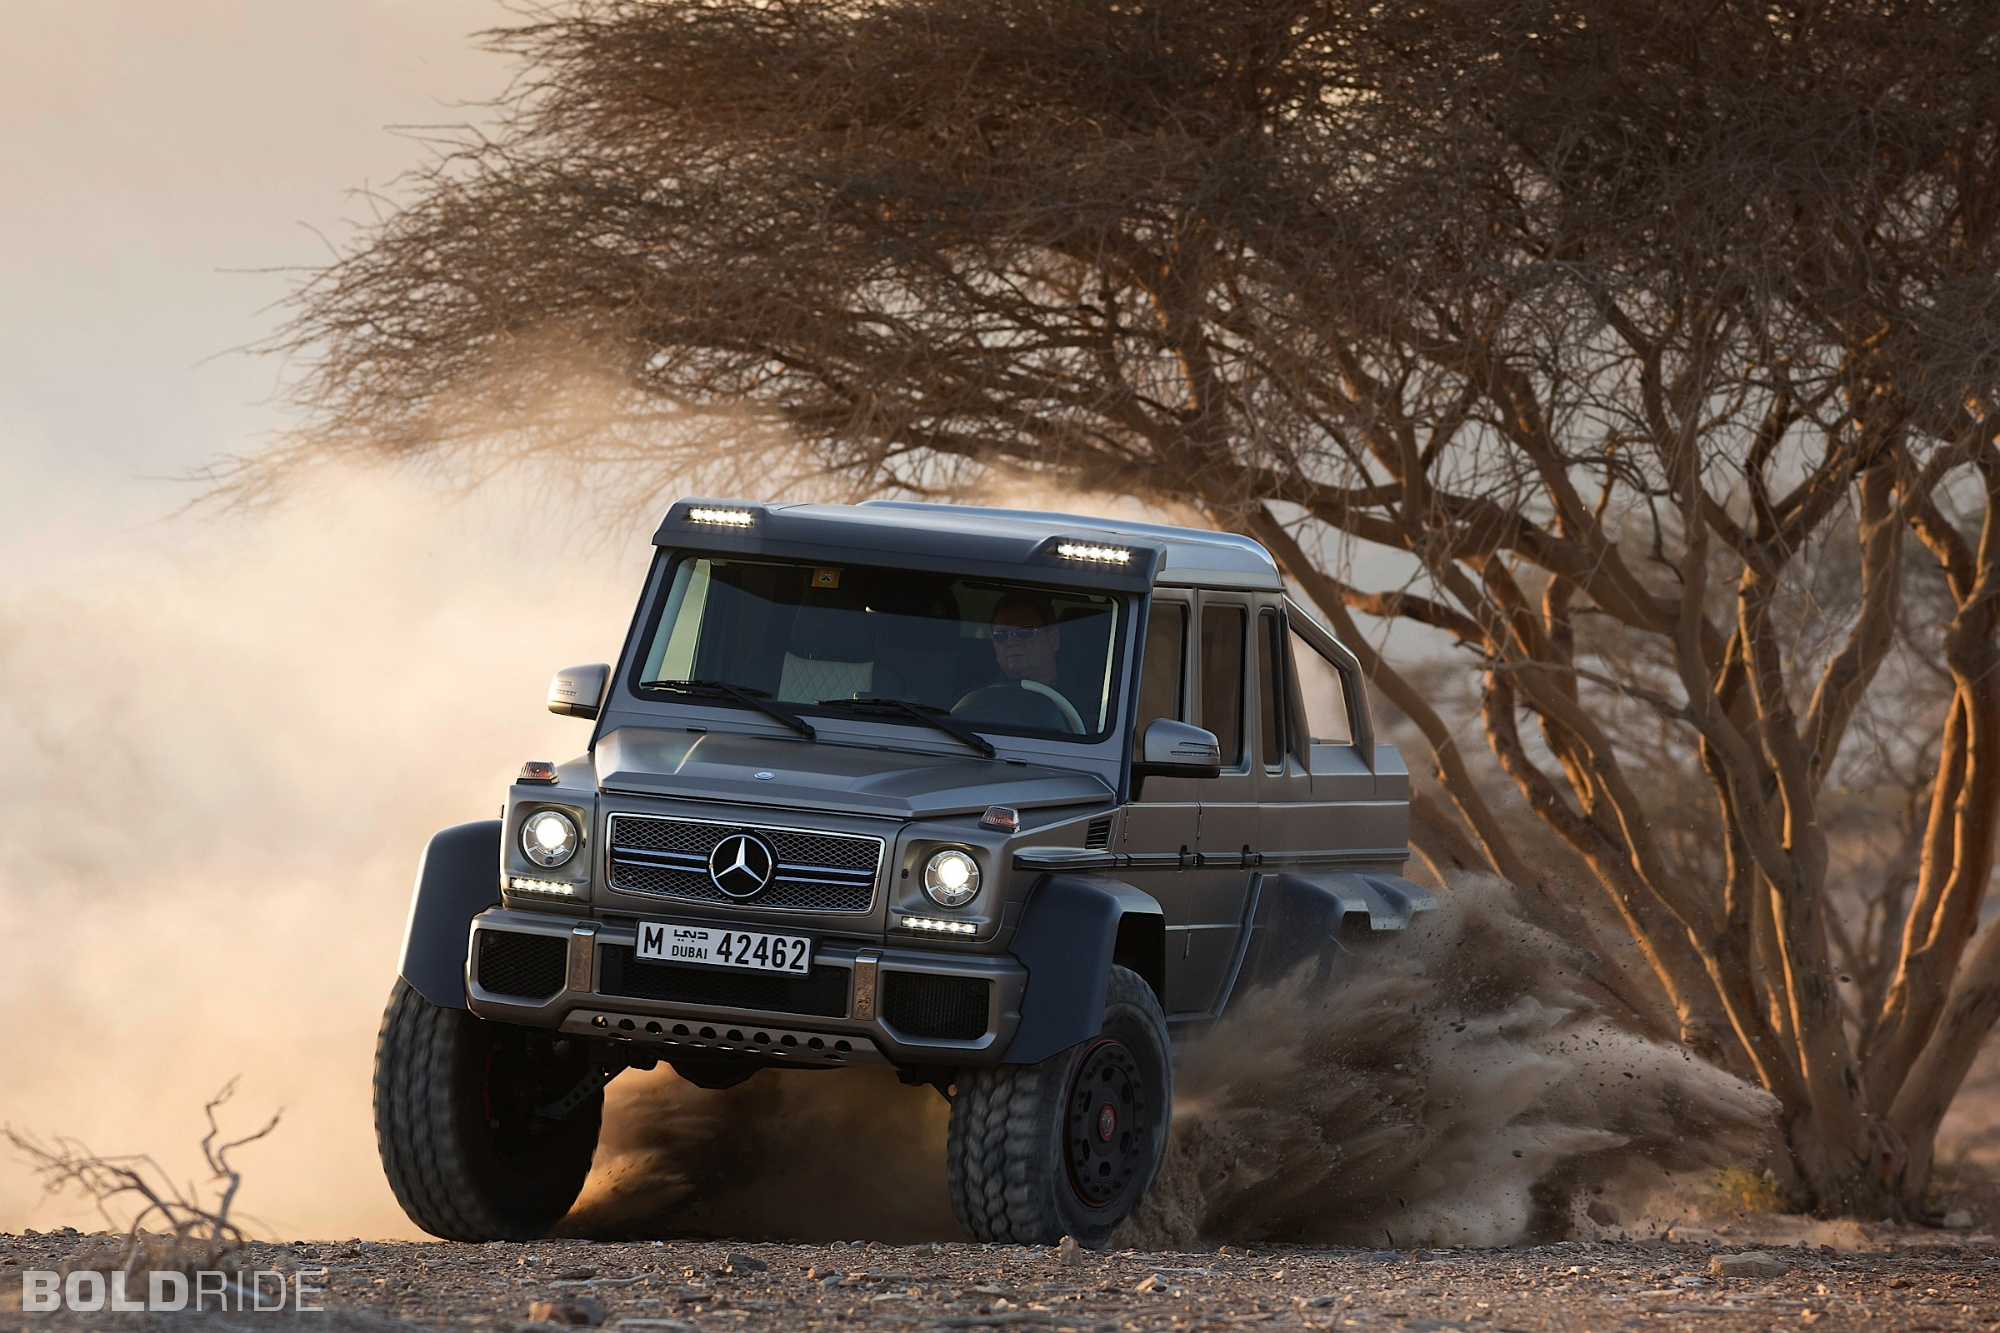 2013 mercedes benz g63 amg 6x6 4x4 offroad suv p wallpaper. Black Bedroom Furniture Sets. Home Design Ideas